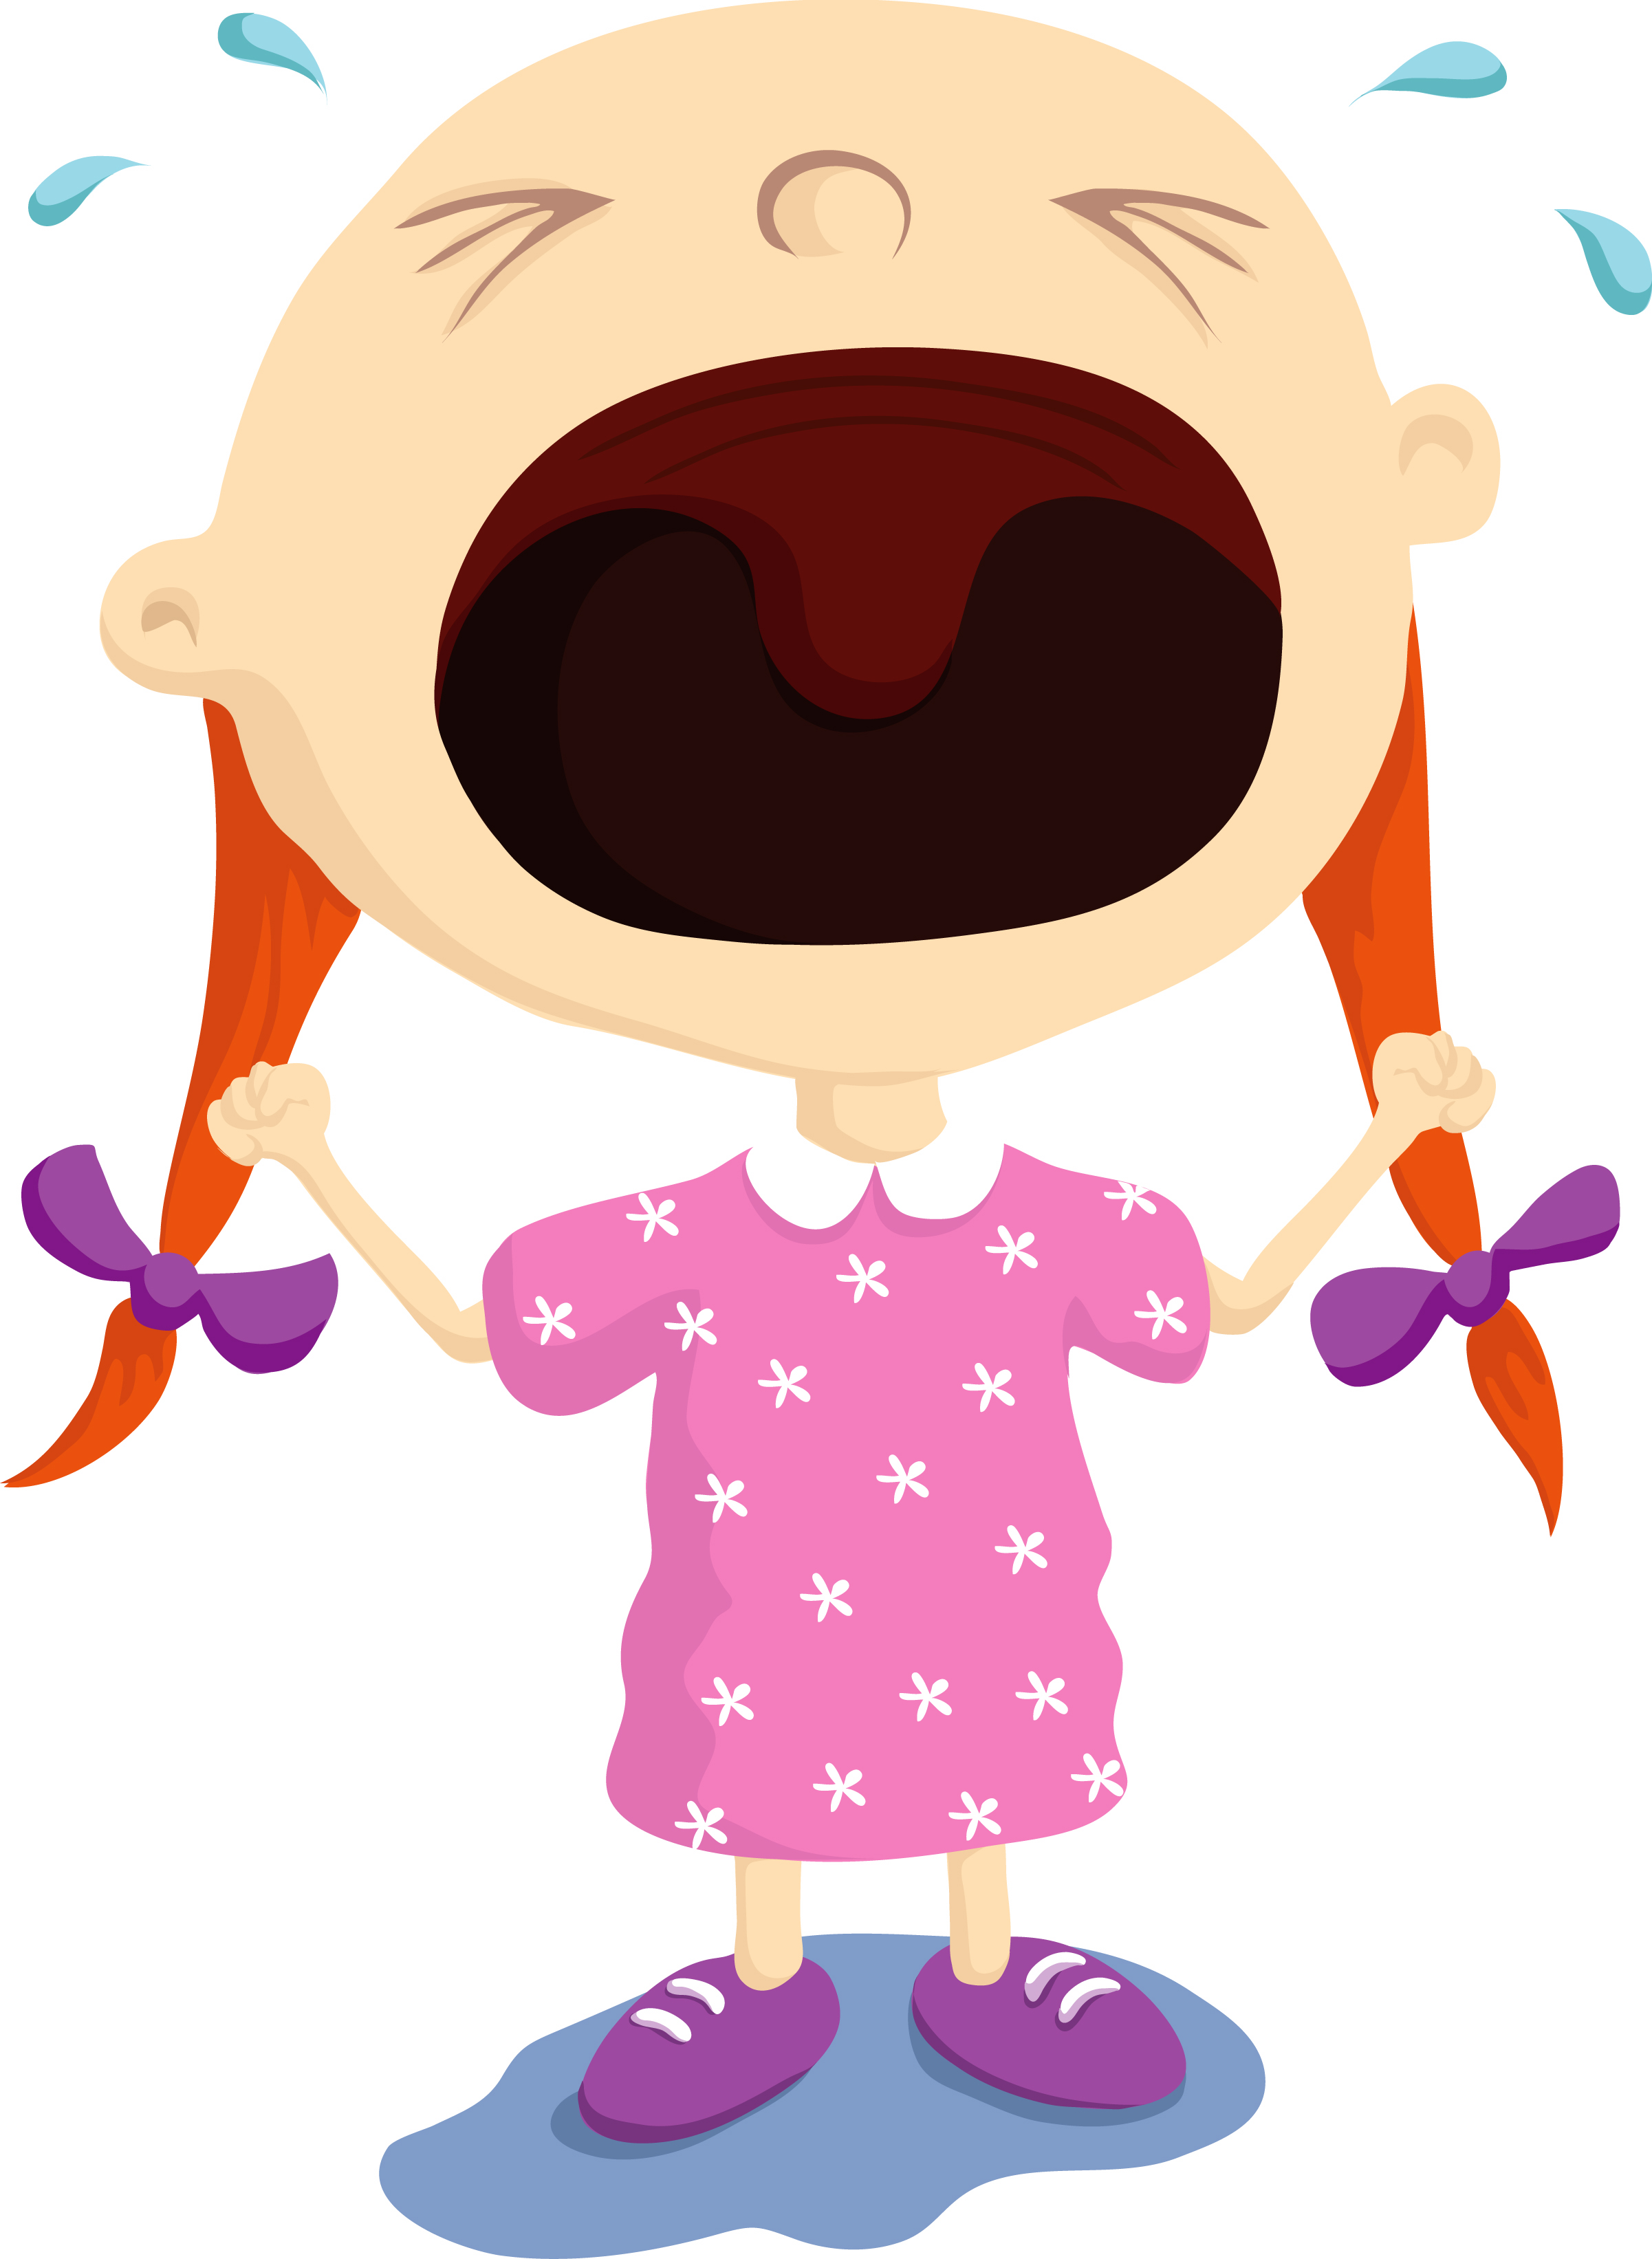 Image result for preventing tantrums and meltdowns cartoon images